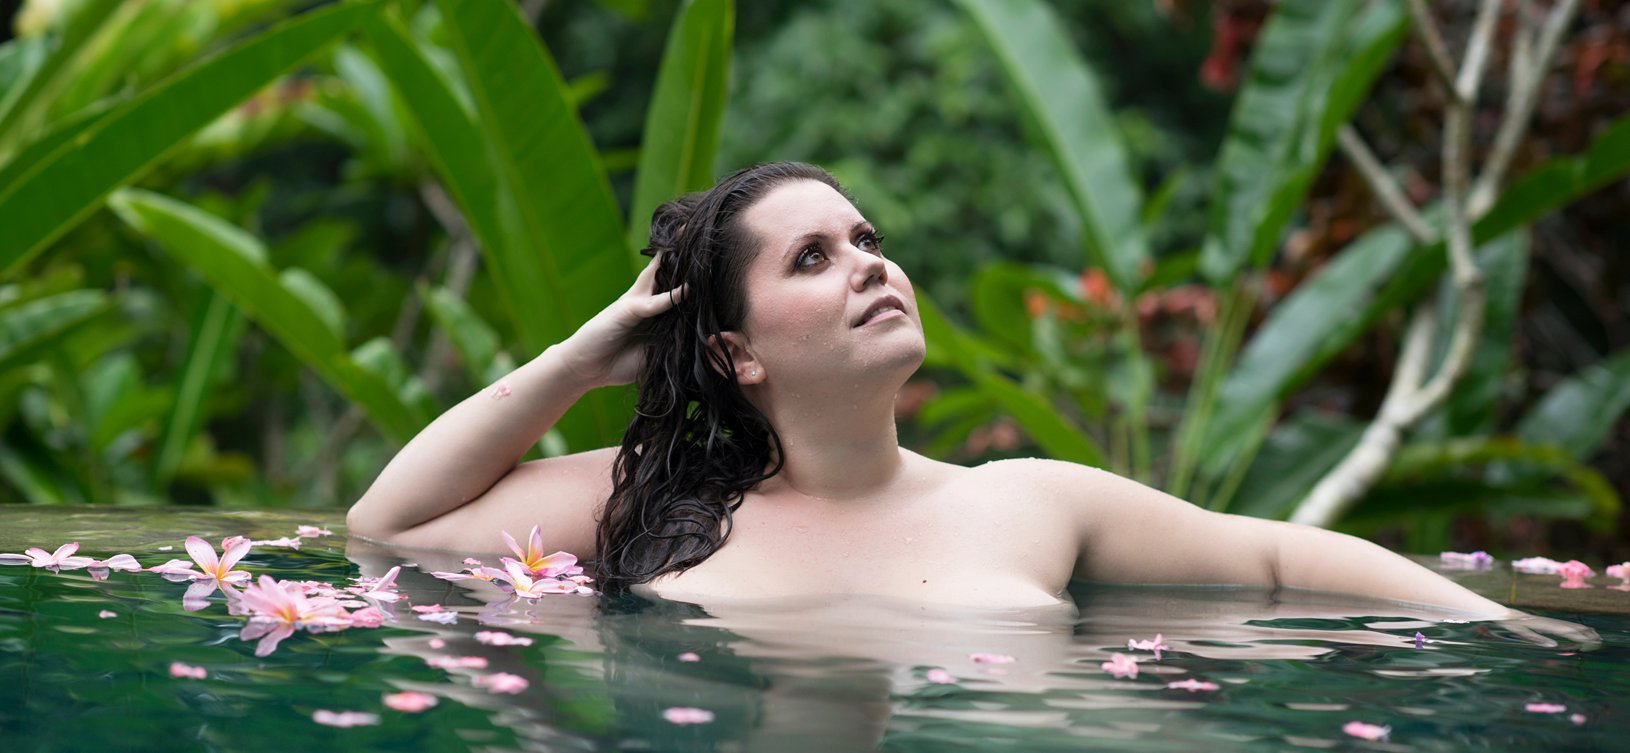 Destination boudoir photo of woman in pool with flower in her hair